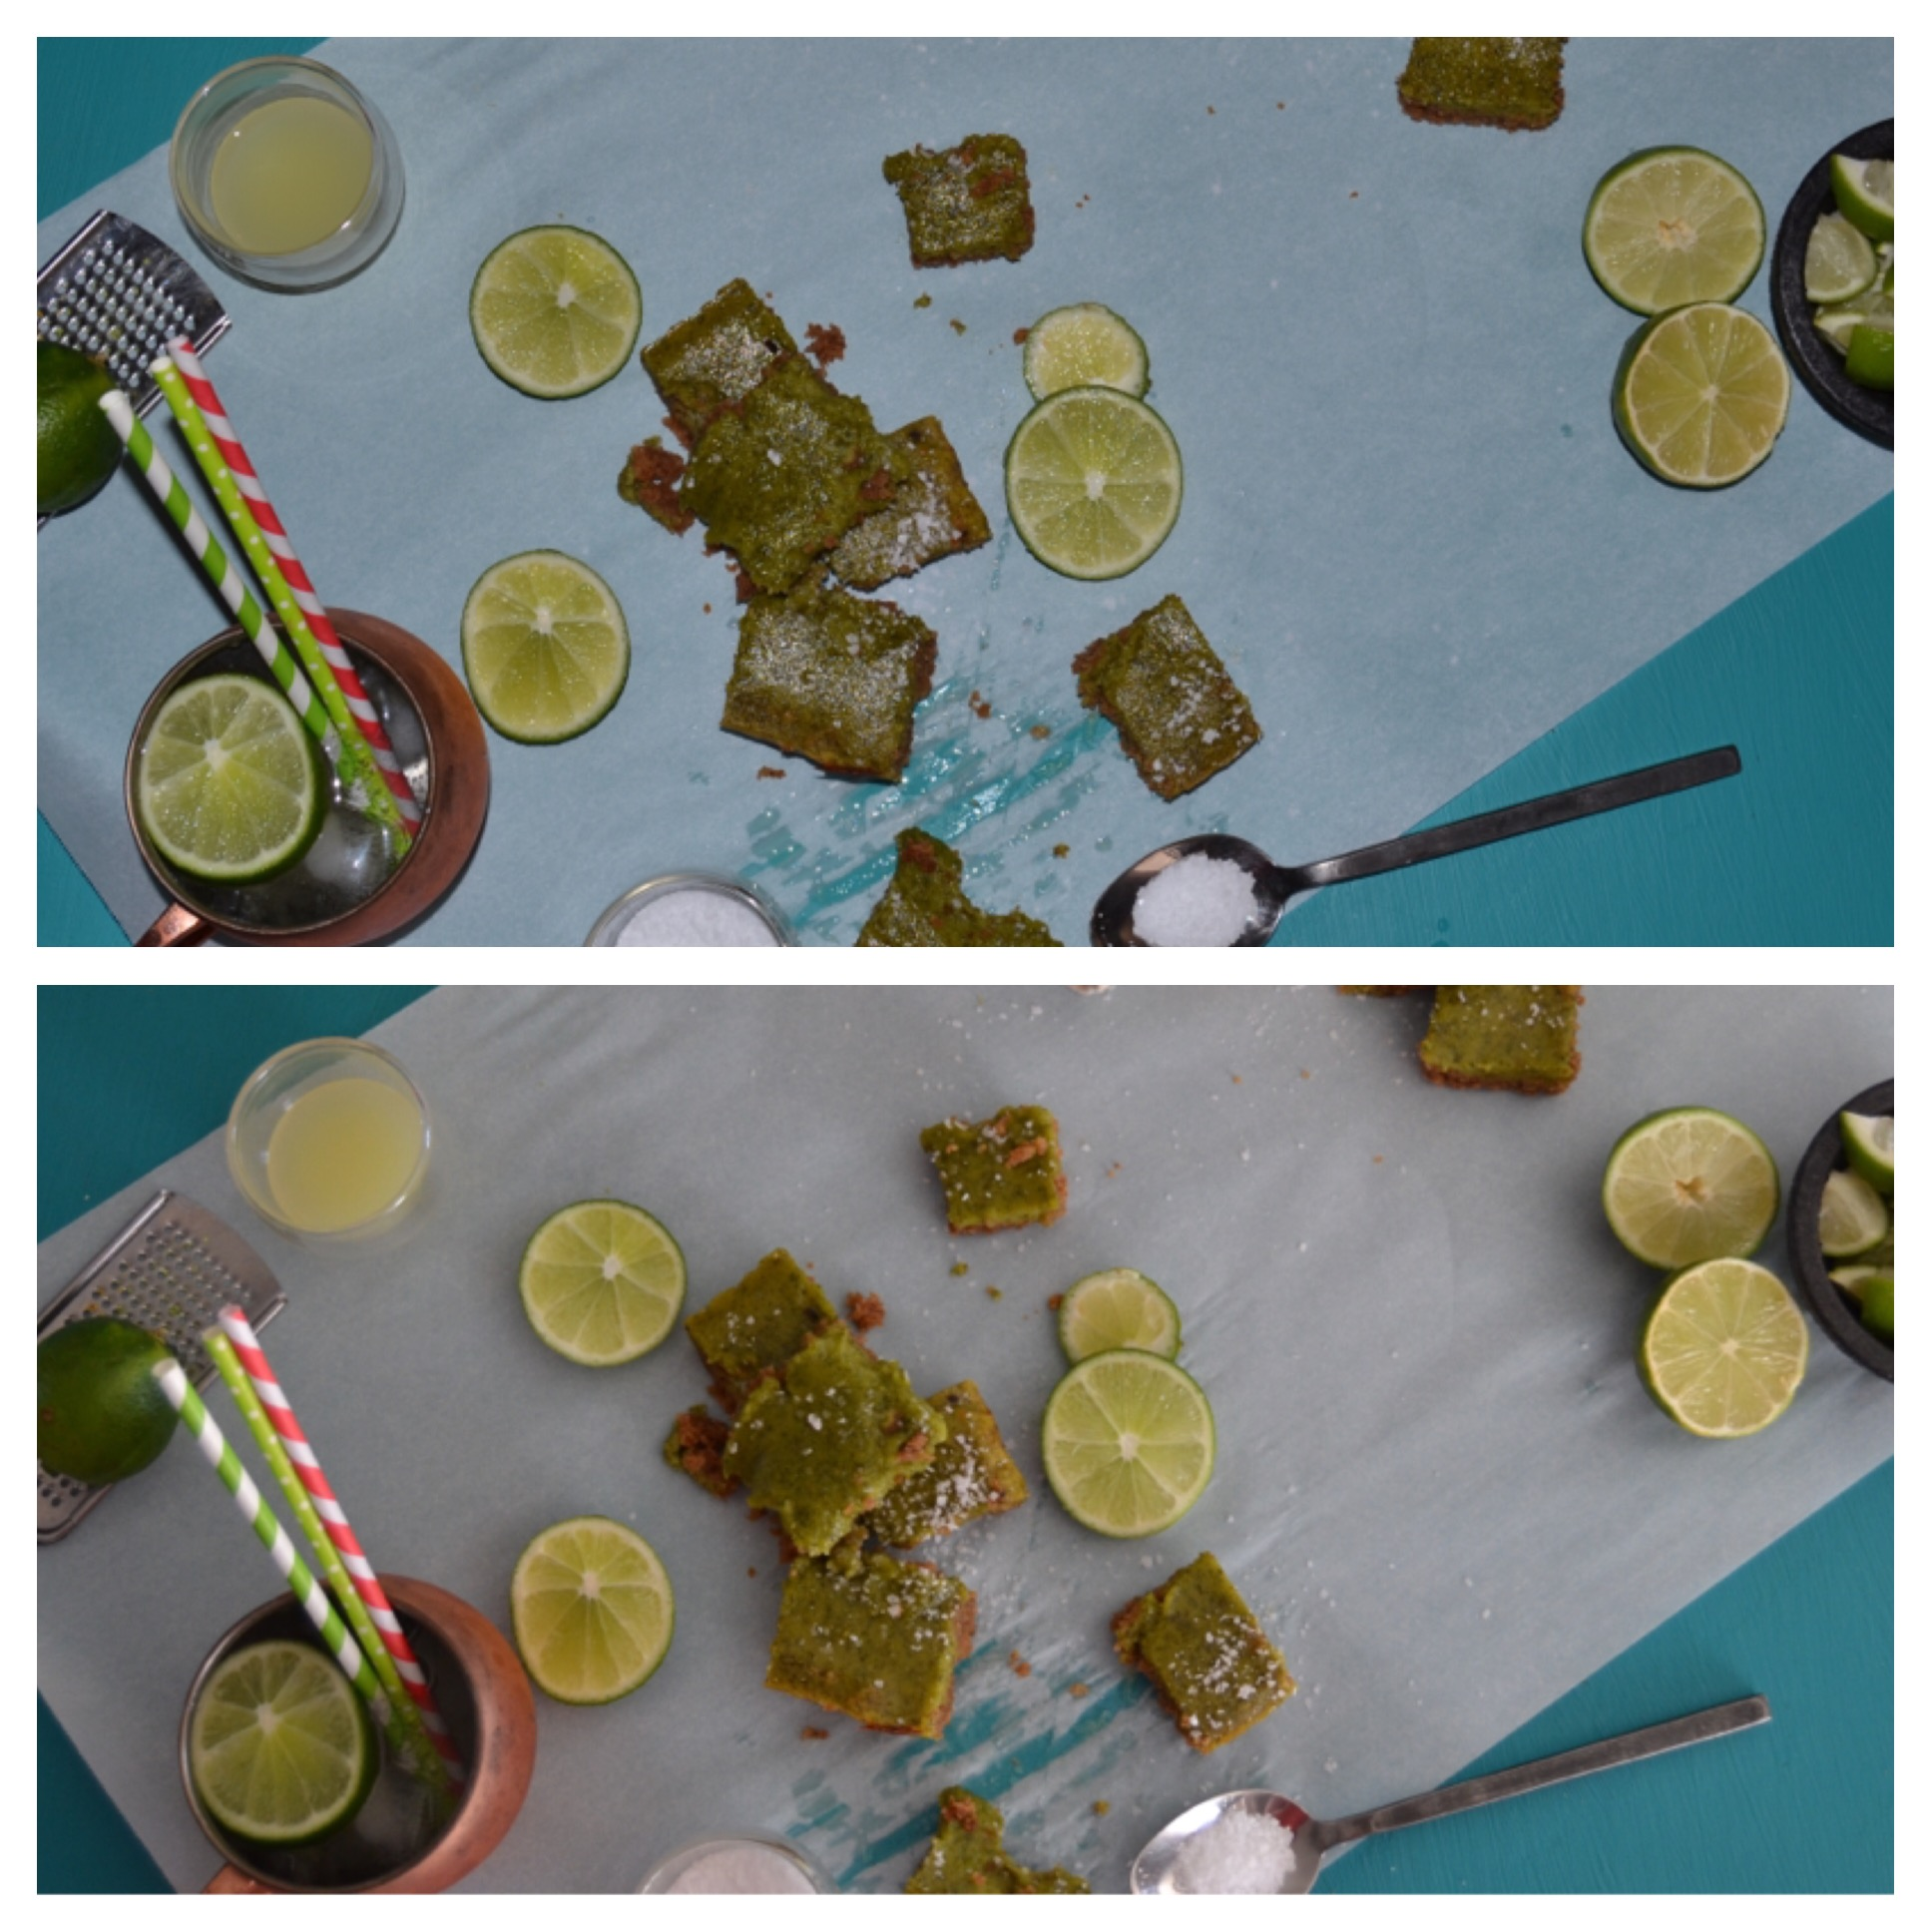 Again, these  Salted Tequila Lime Bars  were taken with my fancy camera. But again, notice the difference between this photo with artificial light (above) and natural lighting (below). Makes all the difference!